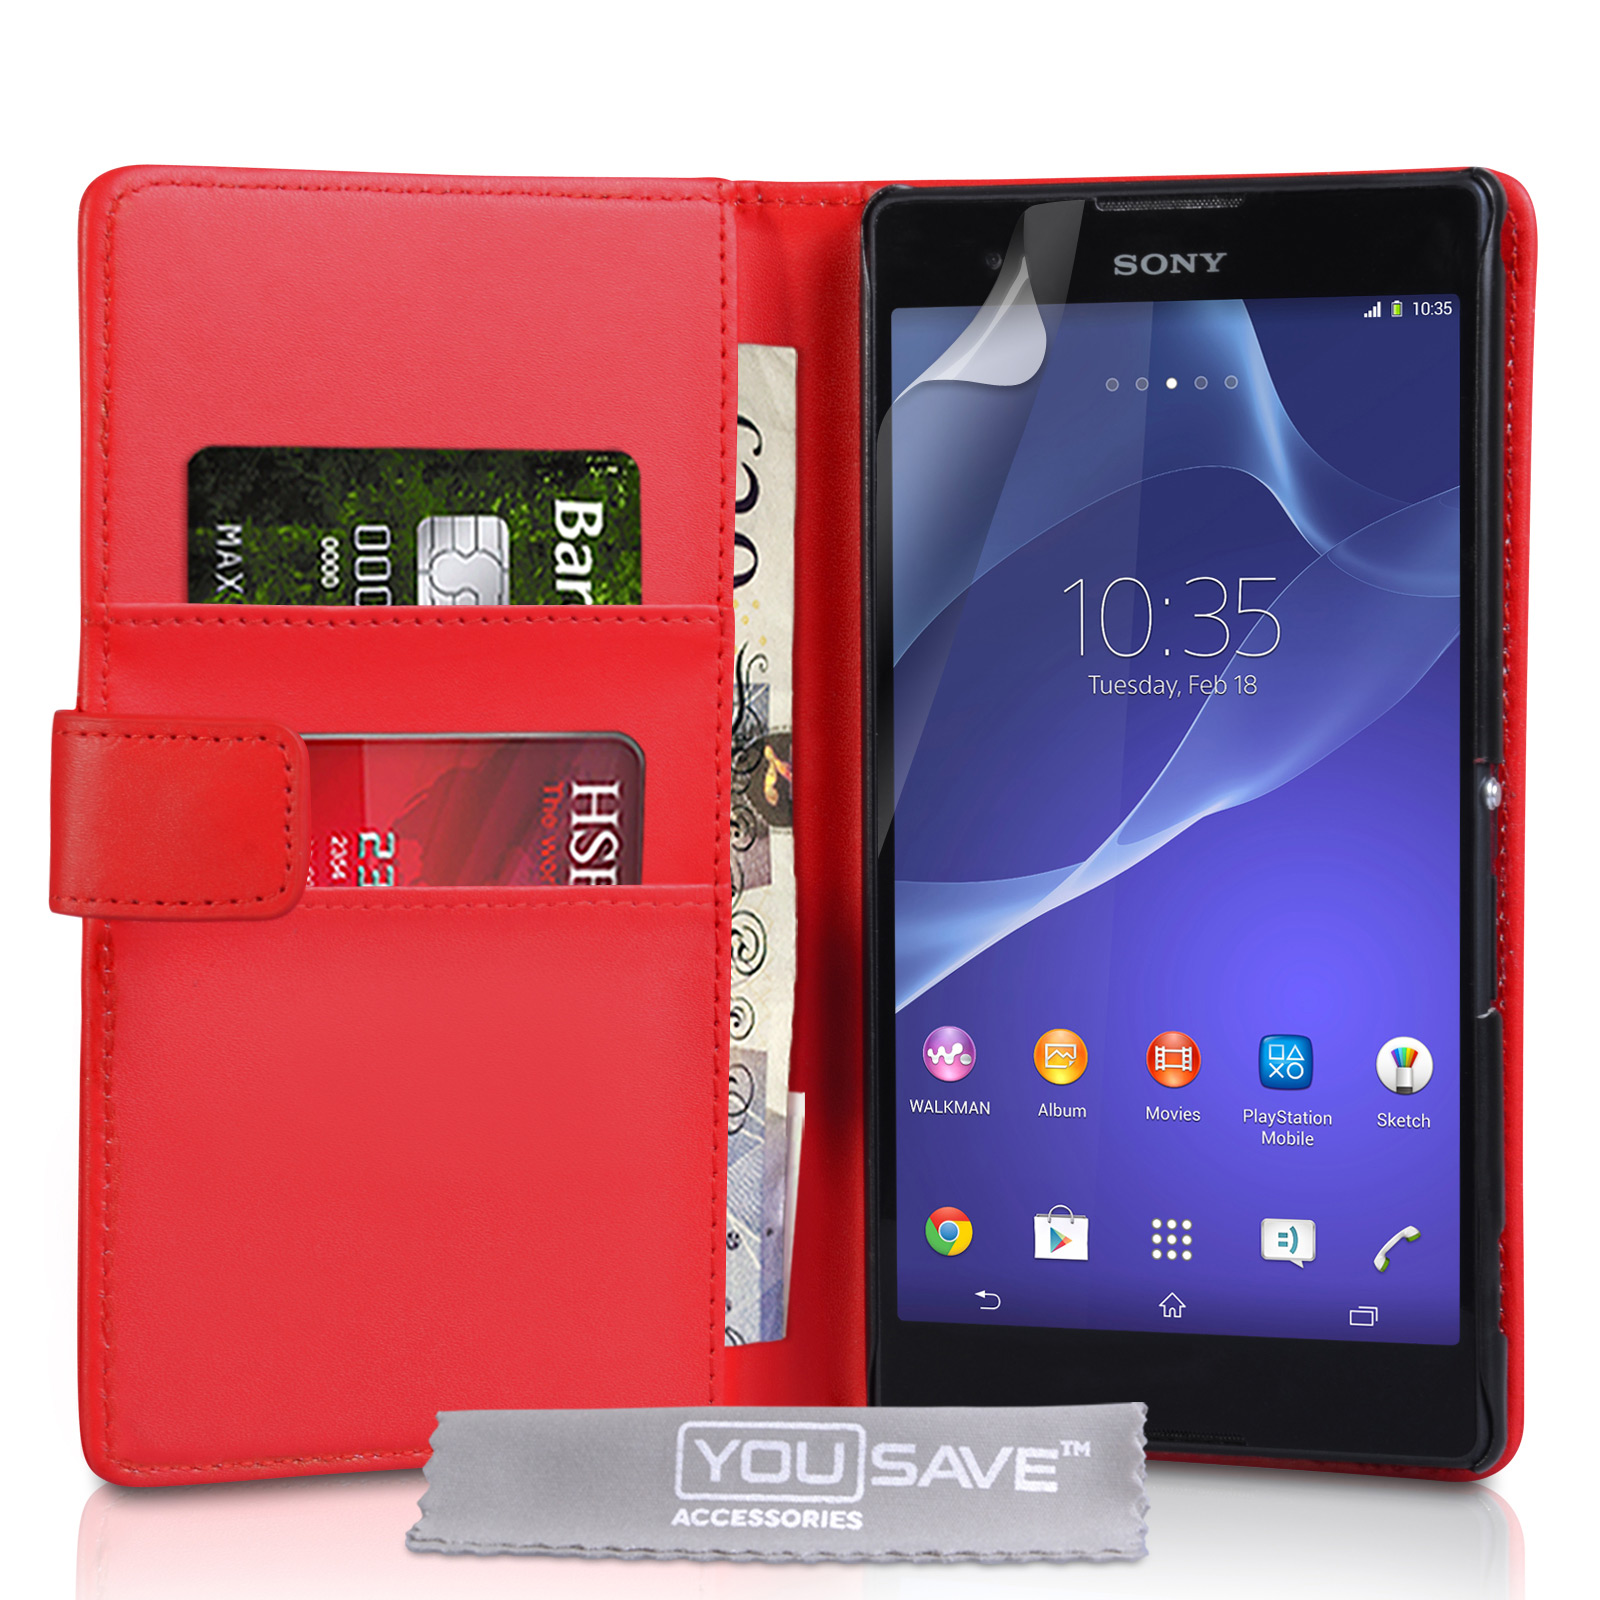 YouSave Sony Xperia T2 Ultra Leather-Effect Wallet Case - Red